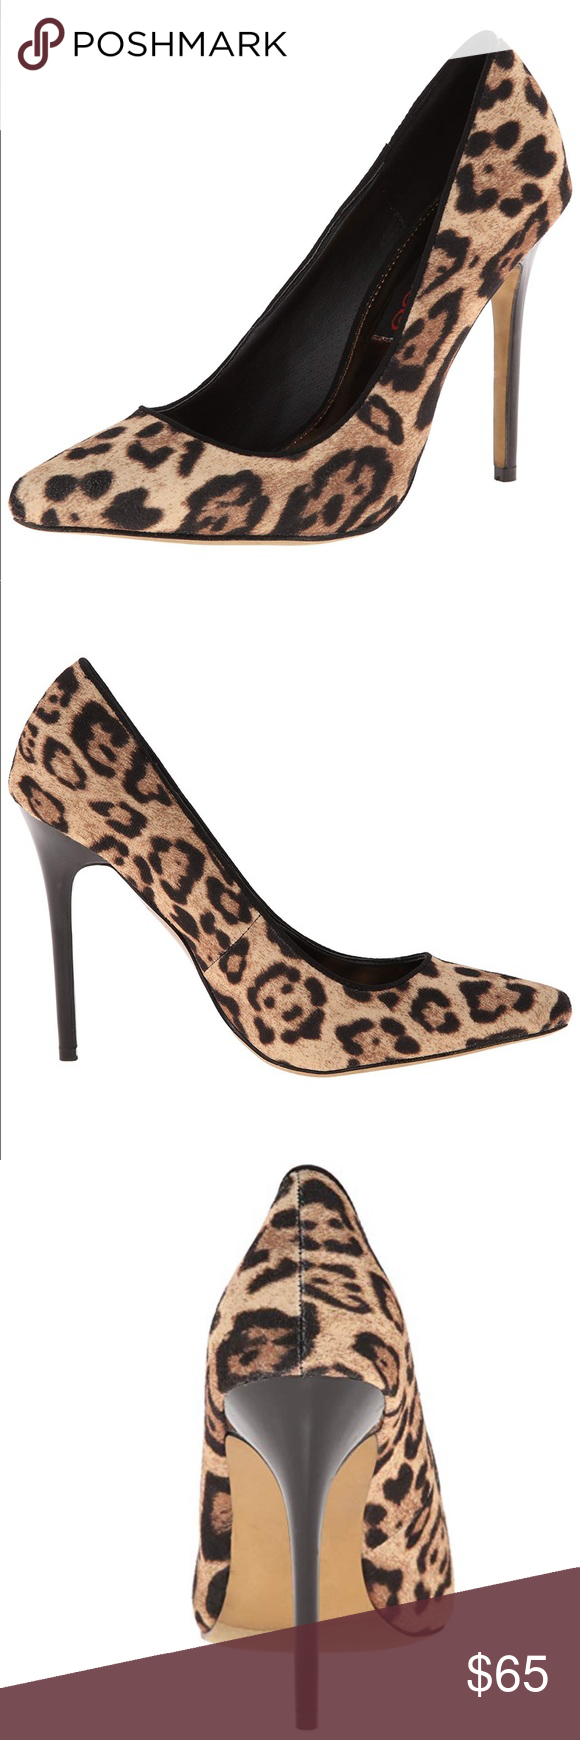 f8b76adc07b2 Joni Joni Leopard Pointed Toe Stiletto Heels 100% Vegan Leather Imported  Heel measures approximately 4